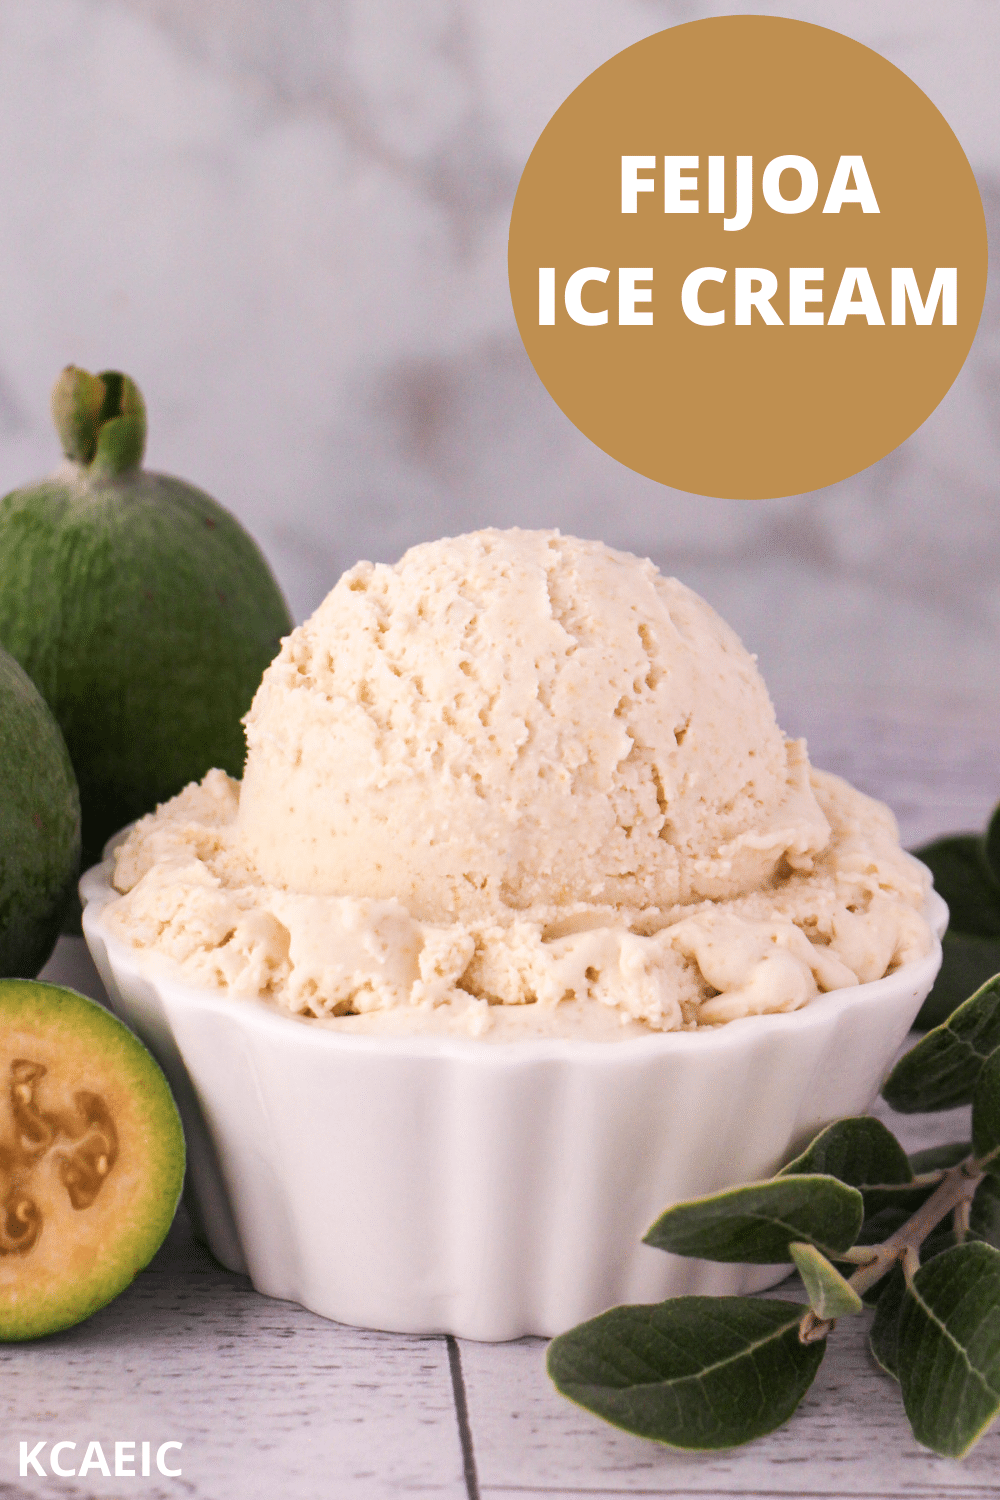 Scoop of feijoa ice cream with fresh feijoa, cut in half feijoa and sprig of feijoa leaves, with text overlay, feijoa ice cream, KCAEIC.